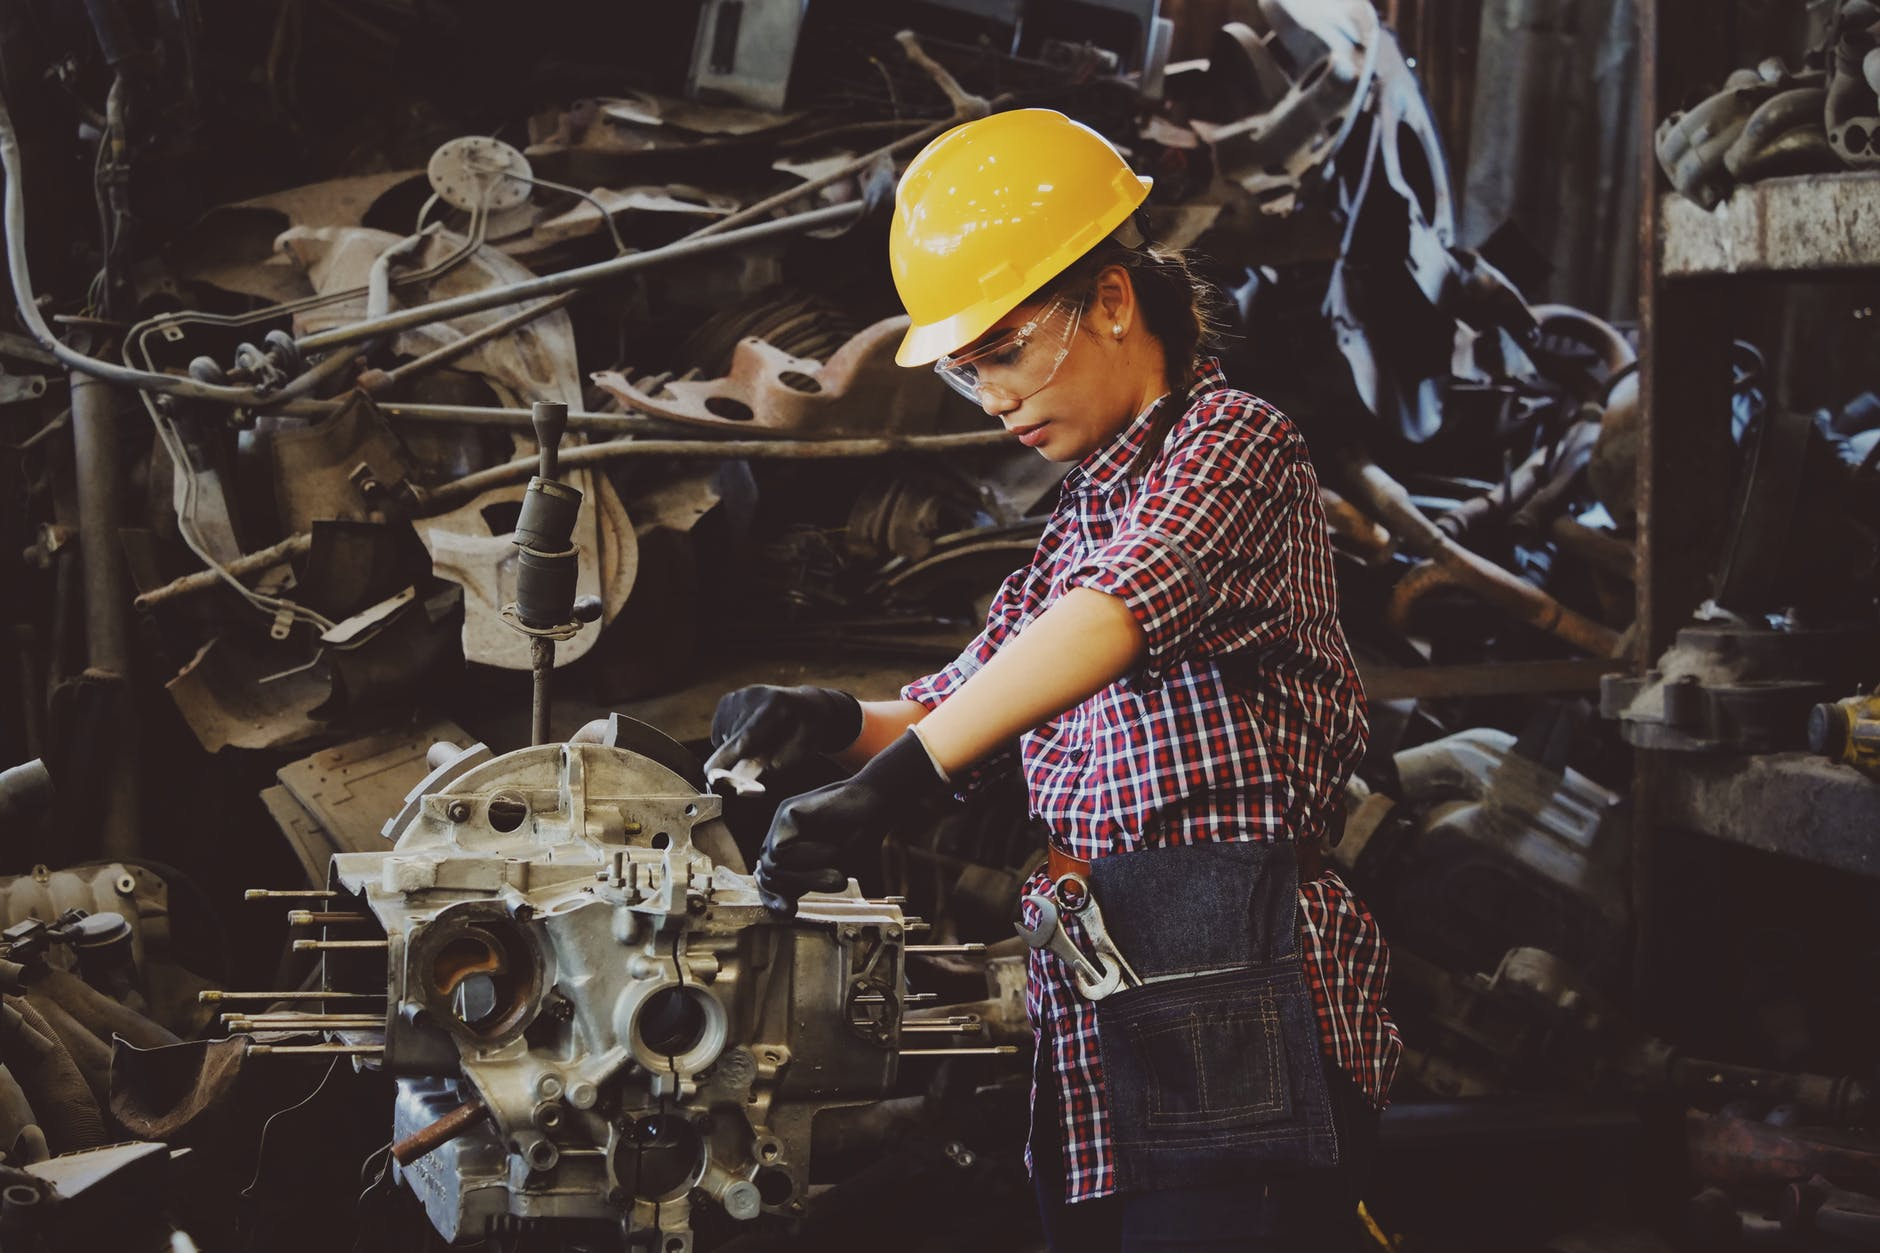 Pelatihan Troubleshooting, Inspection, And Monitoring Of Machinery